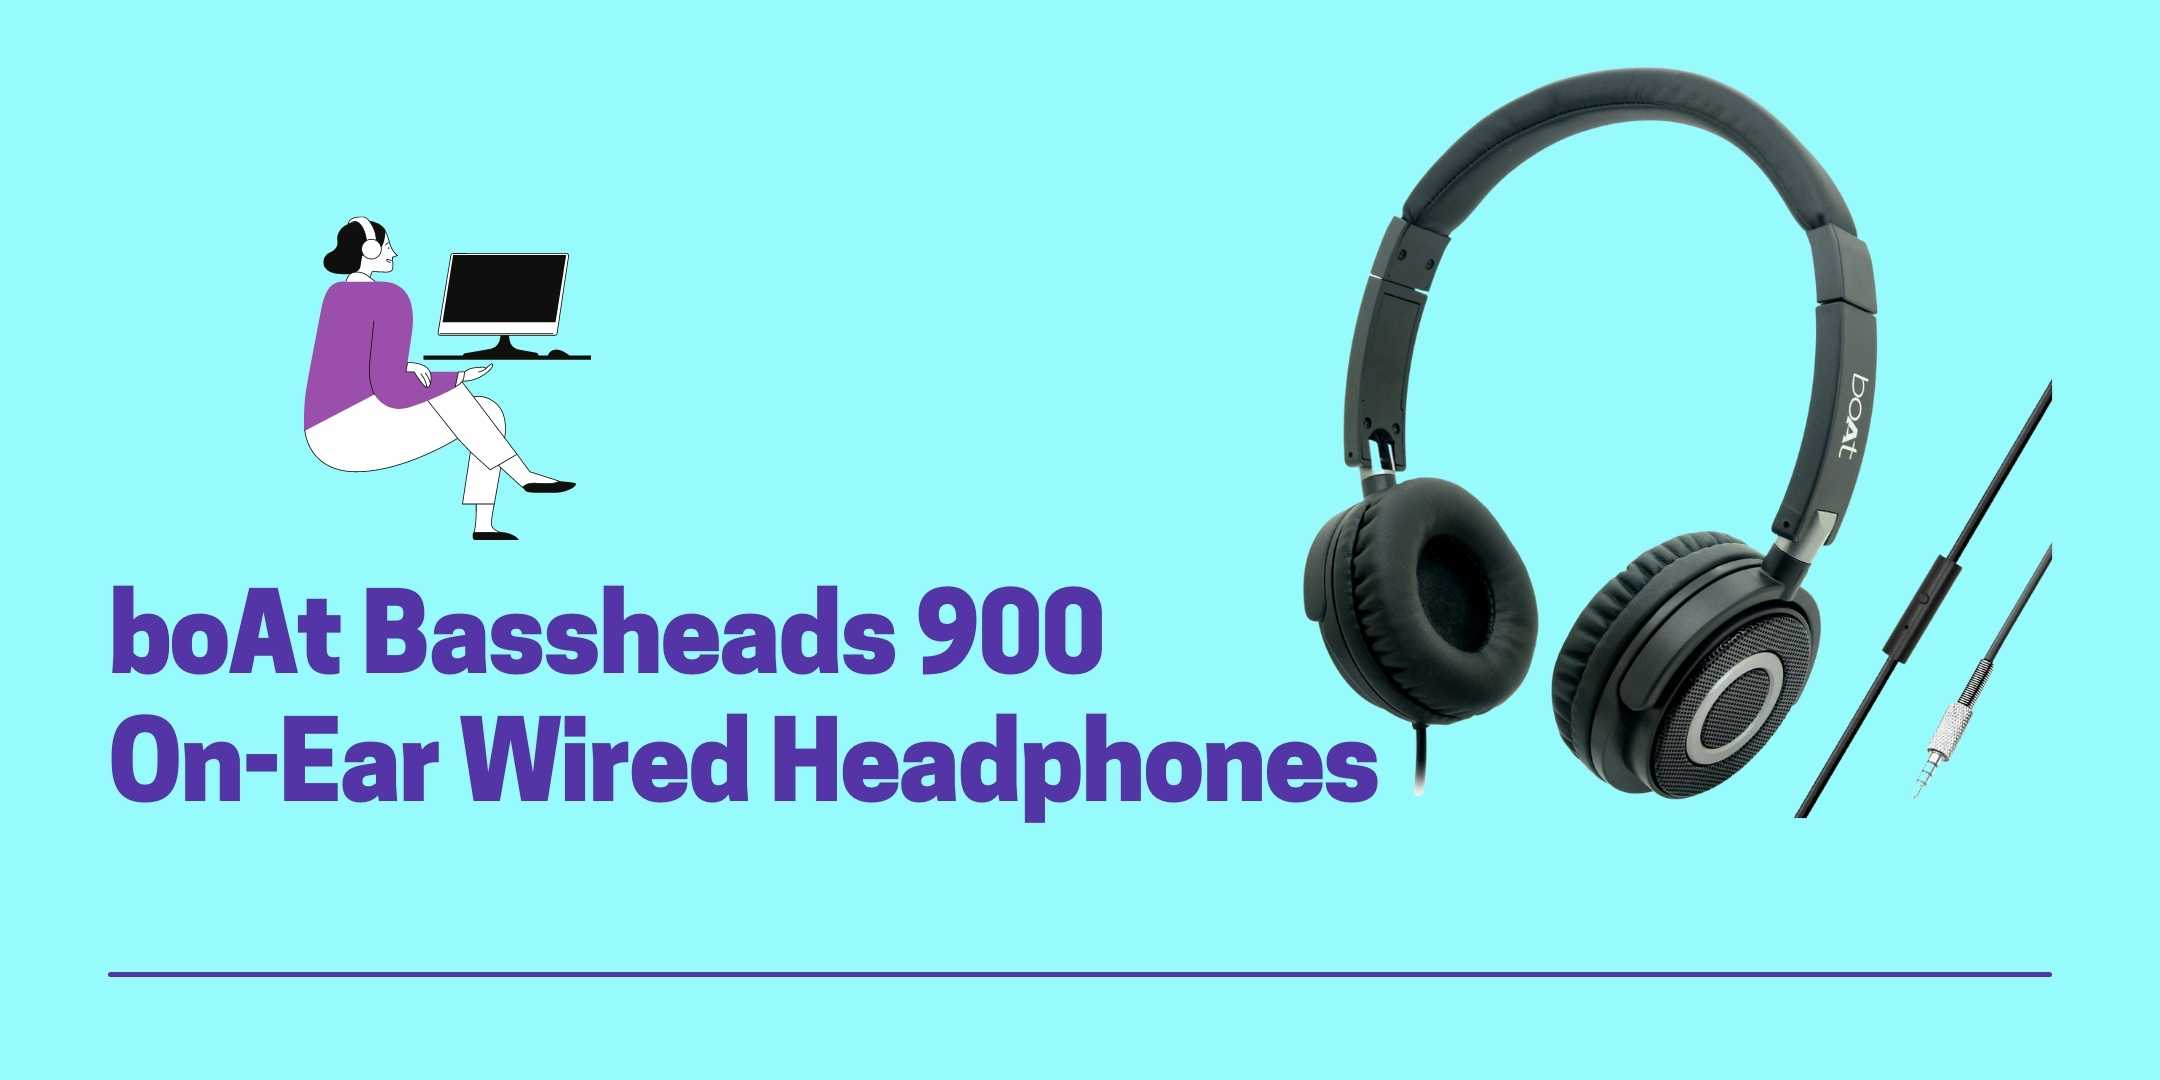 boAt Bassheads 900 On-Ear Wired Headphones